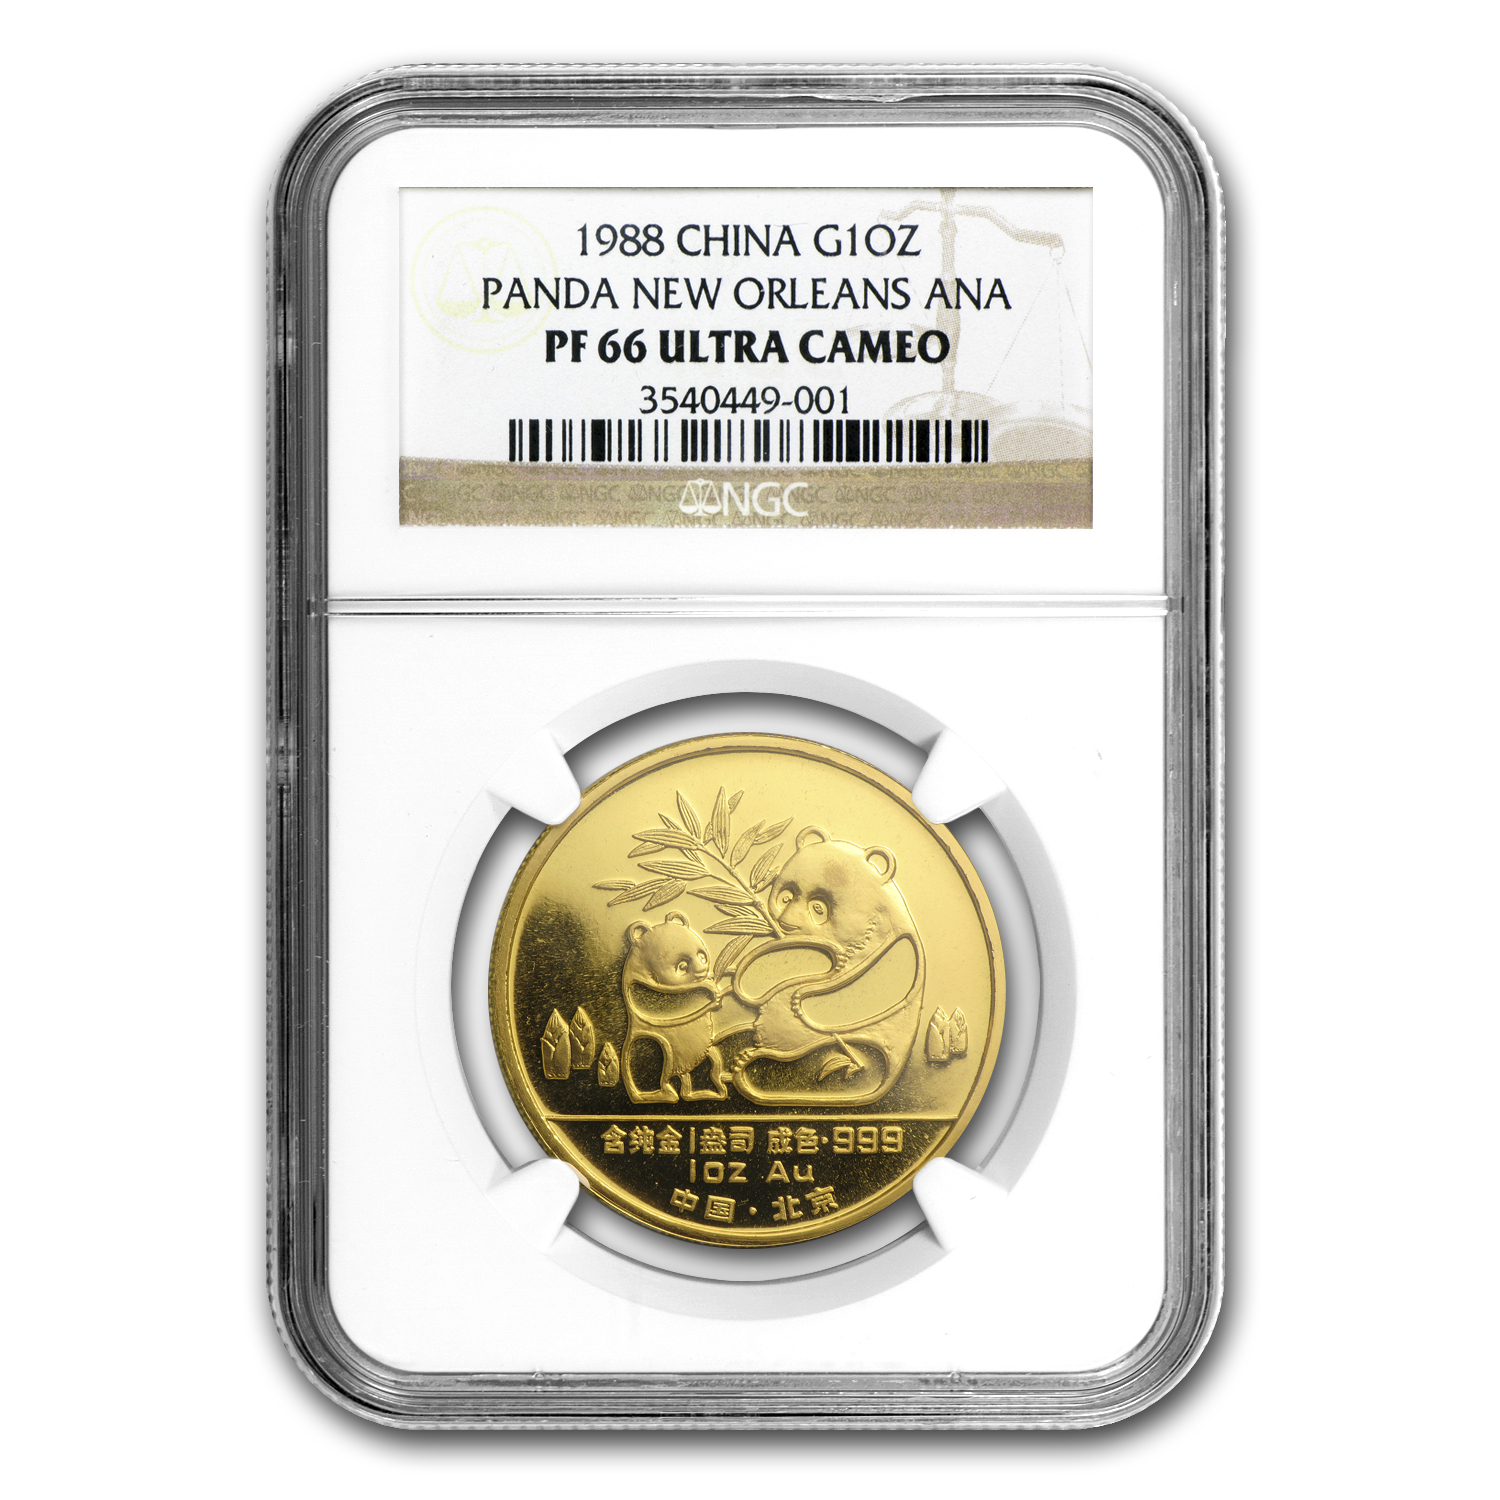 1988 1 oz Gold Chinese Panda PF-66 NGC (New Orleans)